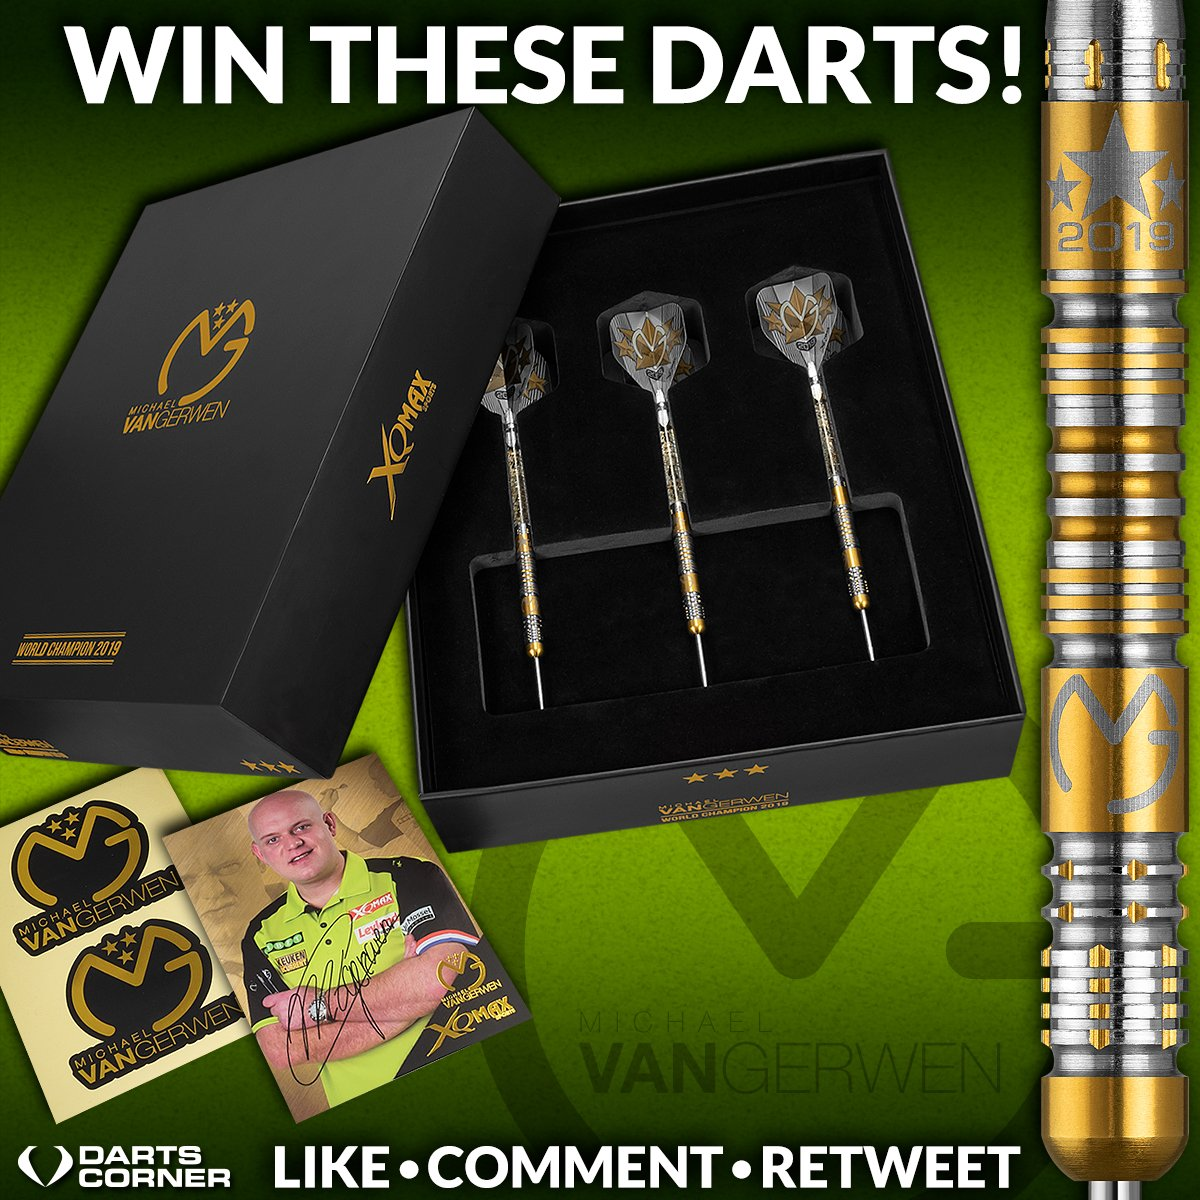 Win a set of the New Limited Edition MVG Gold Titanium Darts! Simply: Like, Retweet and comment on the weight you would like to win. Available in 21g, 23g, 25g.  Good Luck Everyone! #Competition #Giveaway